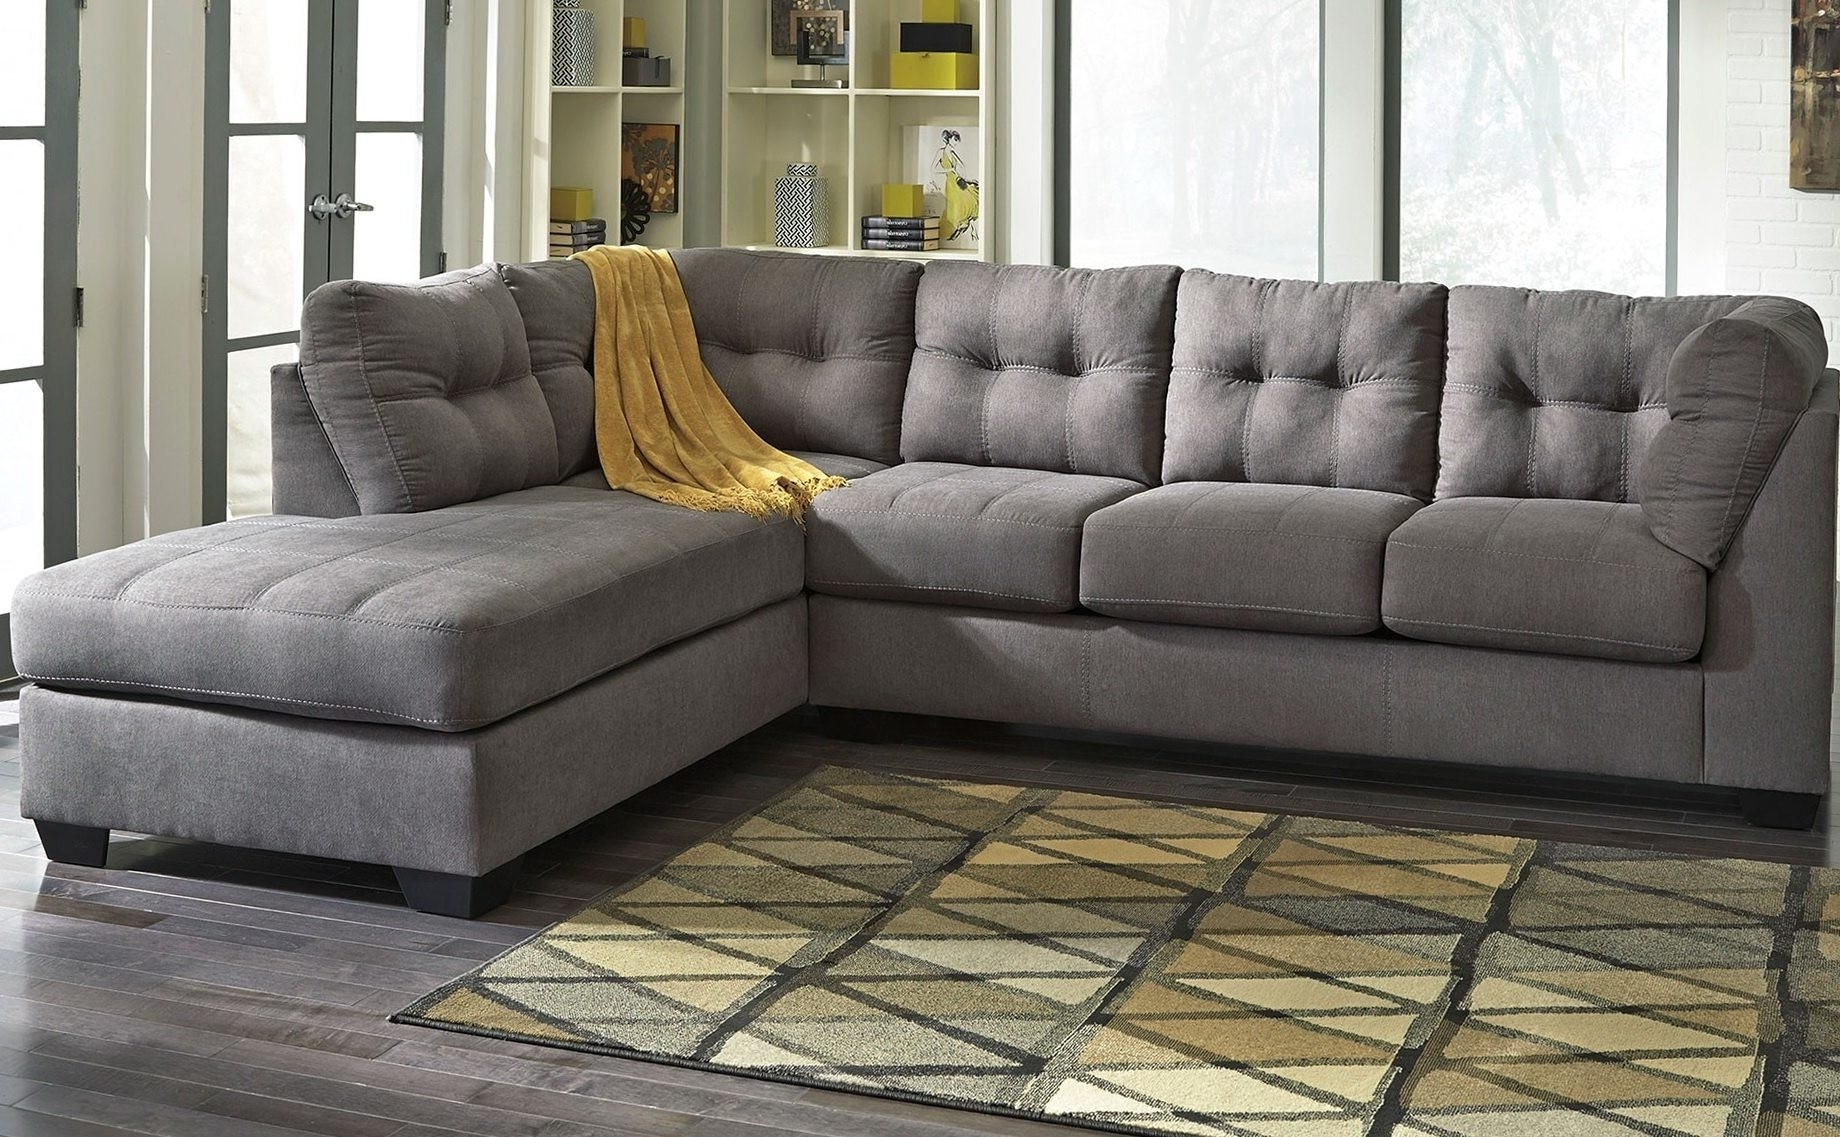 Well Known Sofa ~ Awesome Grey Corduroy Couch Sectional Sofas With Chaise Intended For Chaise Lounge Sectionals (View 6 of 15)